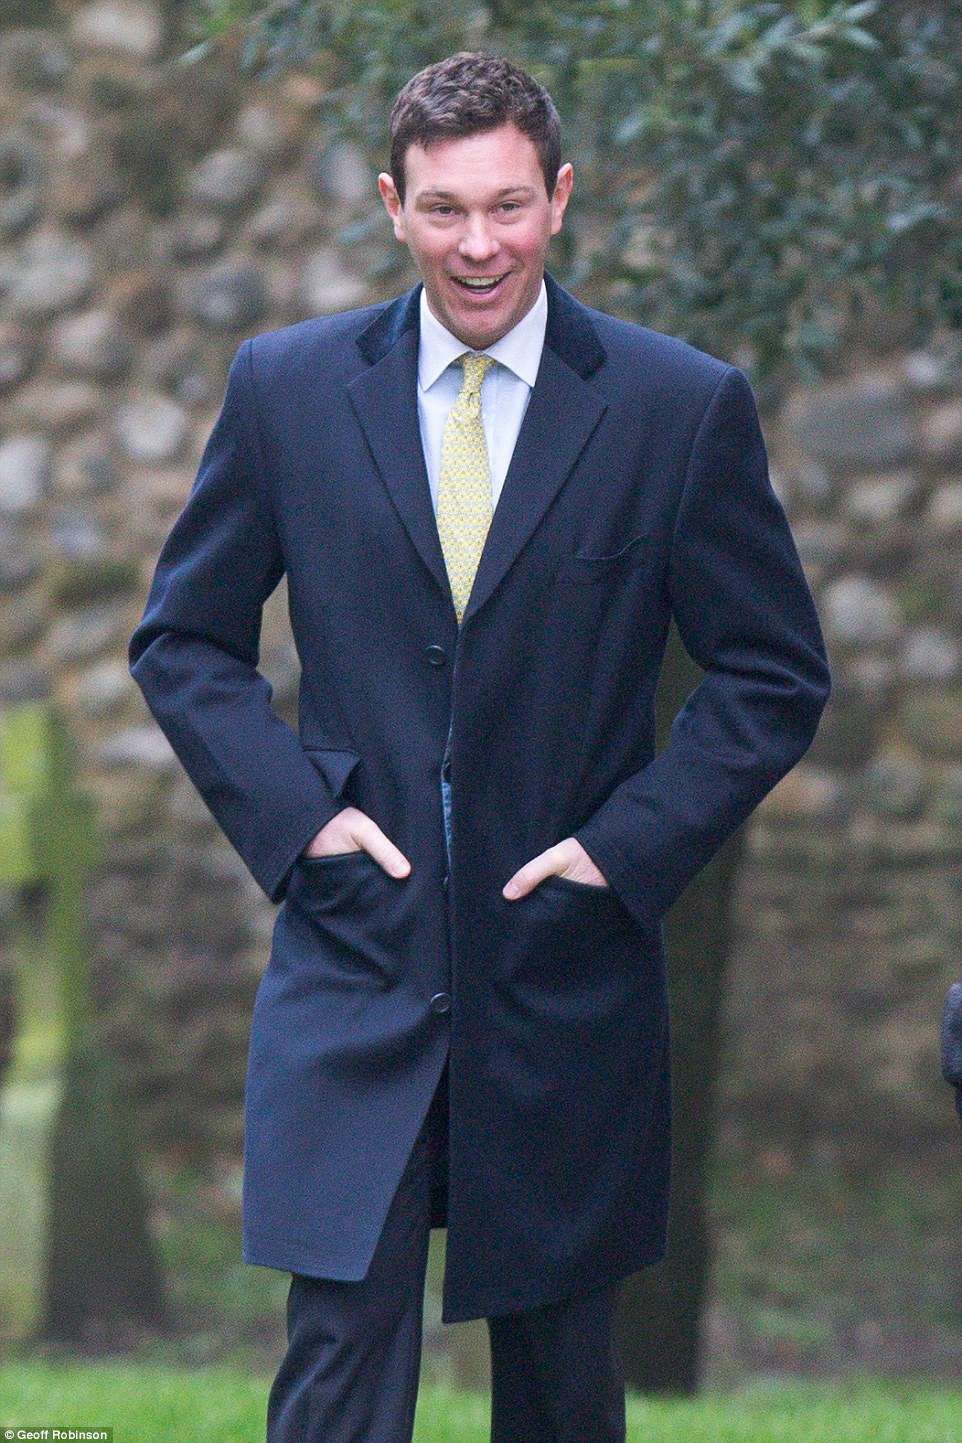 Jack Brooksbank joined the royals at Sandringham for Sunday service yesterday, but did not walk to church alongside his partner Eugenie